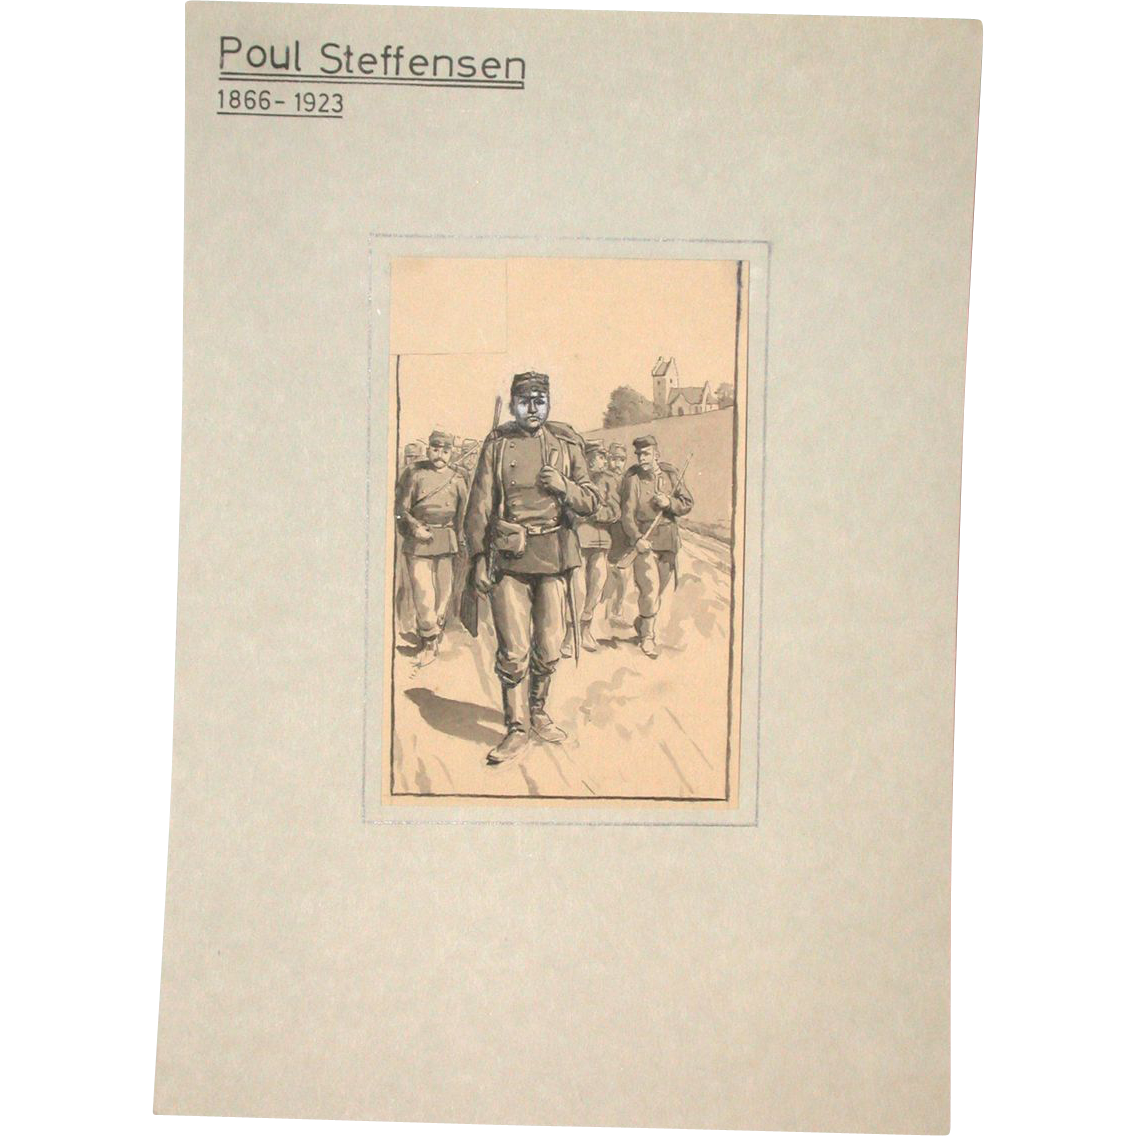 Poul Steffensen (1866-1923) - Original  Pencil, Pen and Watercolor Drawing on Paper, Circa 1900 - 1910